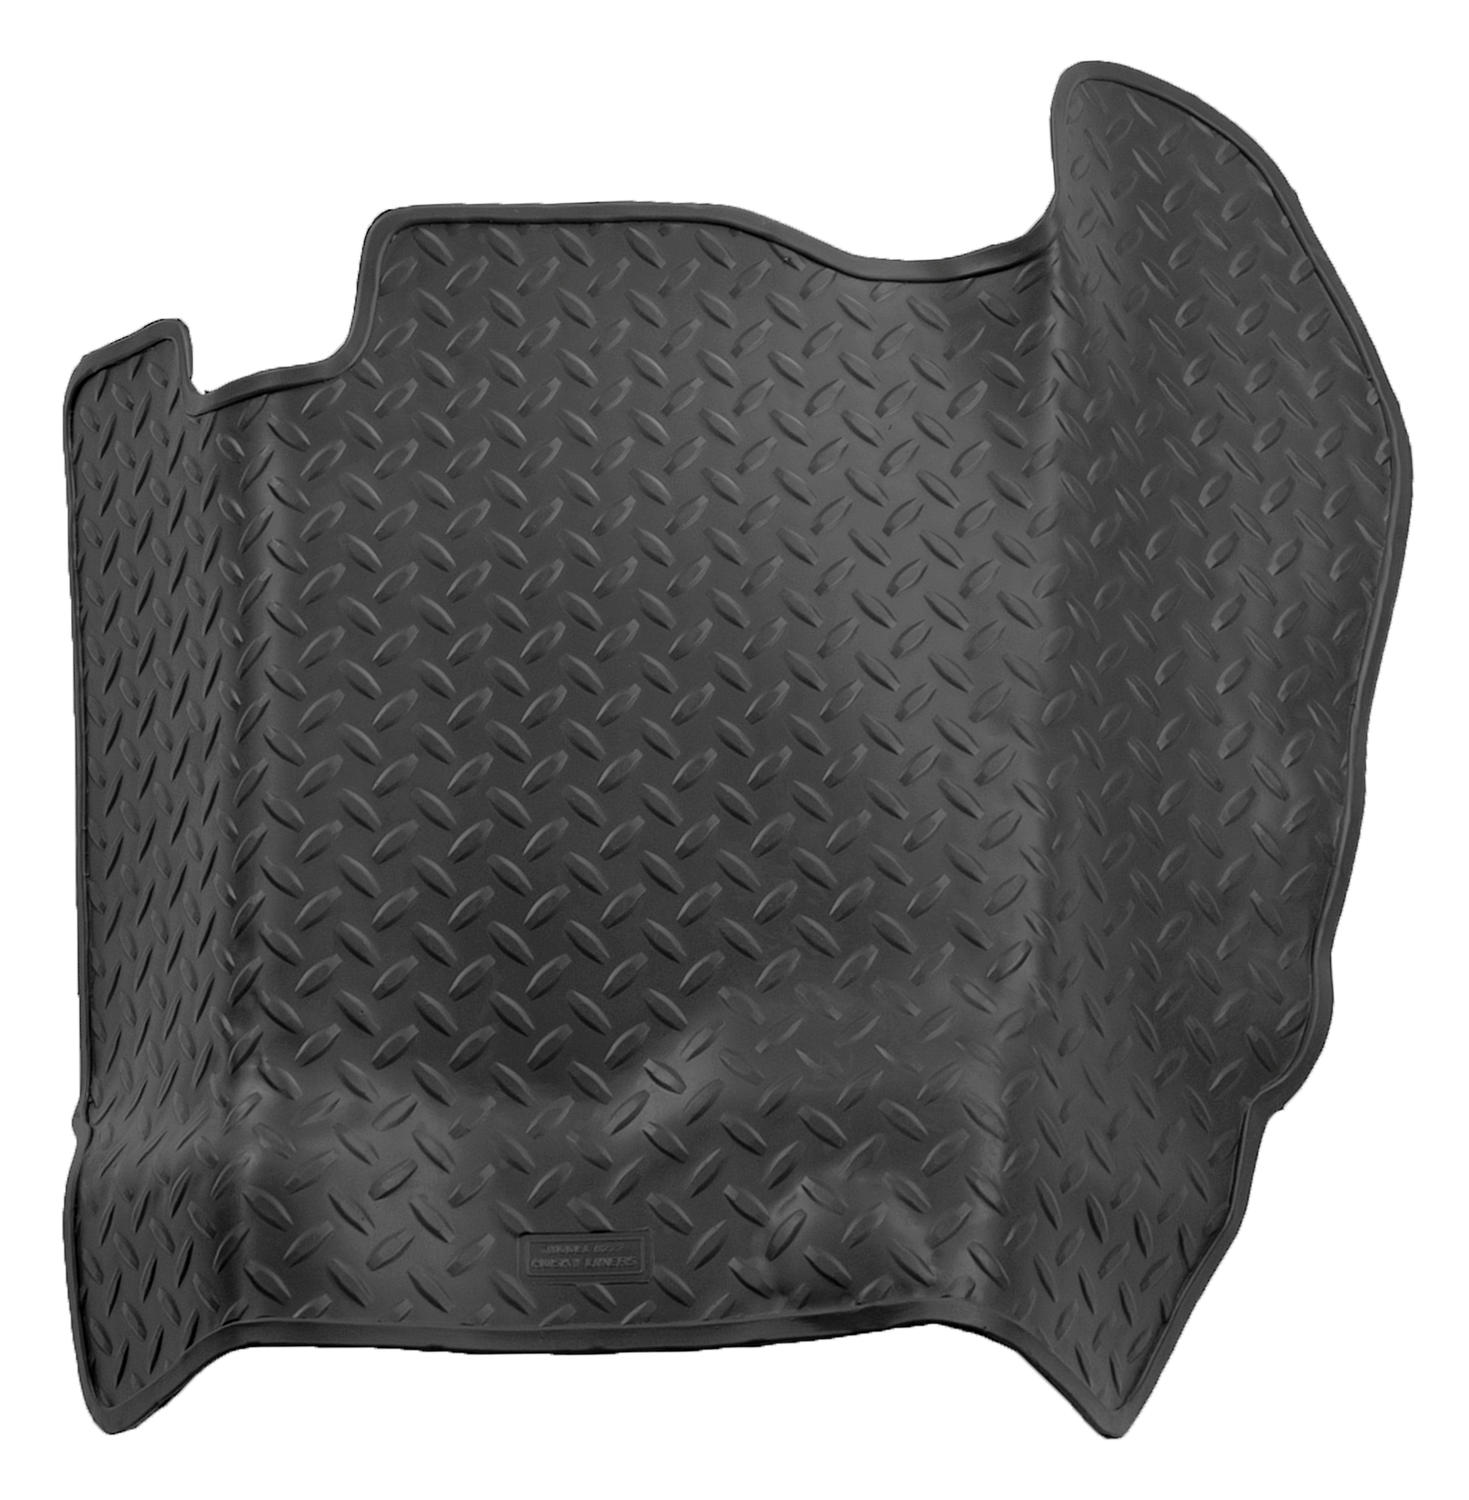 Husky Liners 87-96 Ford Truck/80-96 Bronco (Auto Trans.) Classic Style Center Hump Black Floor Liner